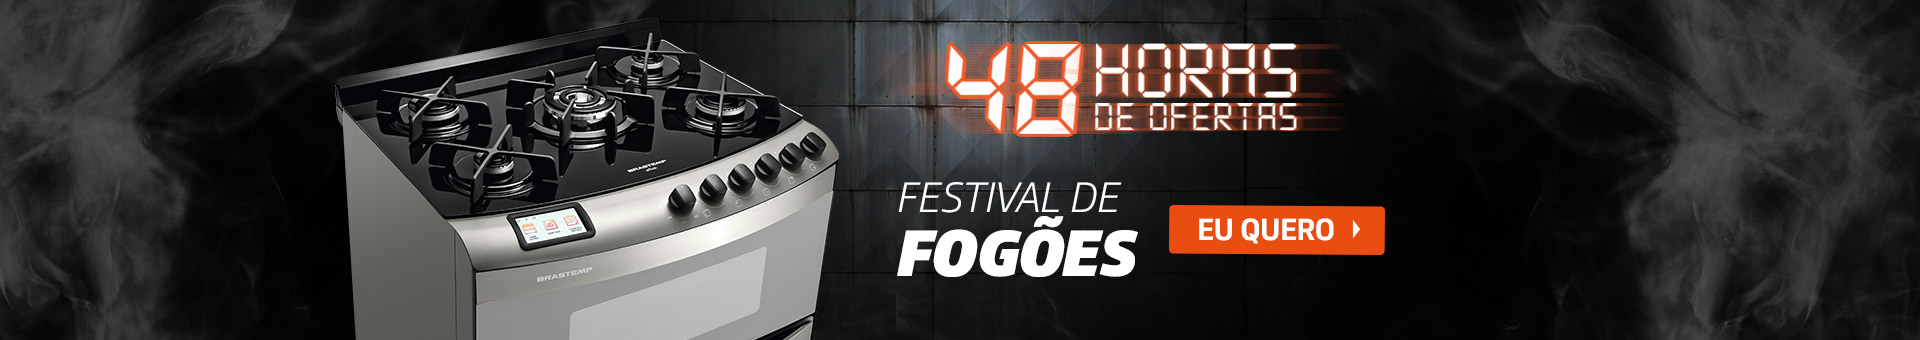 48 horas fogoes